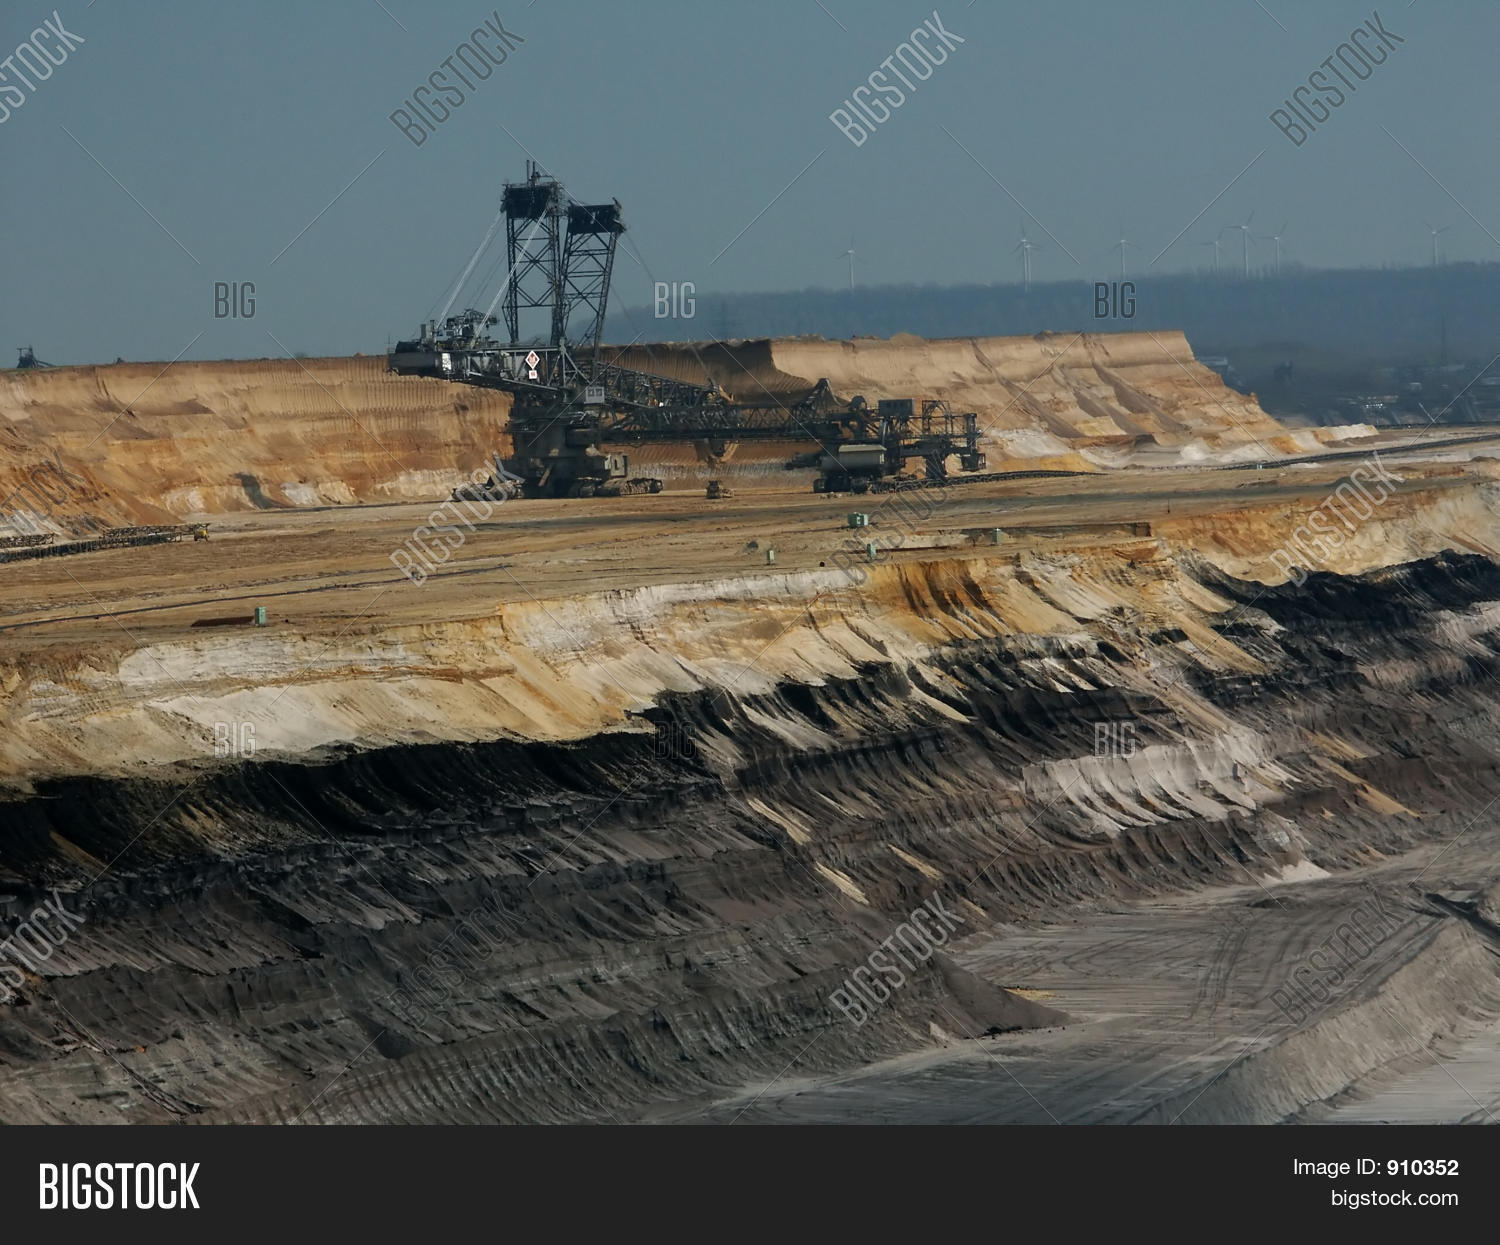 aboveground,big,black,browncoal,bucketwheel,coal,coalmining,coalterritory,color,colour,countryside,dark,destruction,electricity,energy,environment,environmentprotection,excavator,exhaust,giant,hole,industry,landscape,large,layerofearth,lignite,mining,nature,open,openpit,pit,pollutioncontrol,power,powerplant,sand,scenery,structure,trace,work,yellow